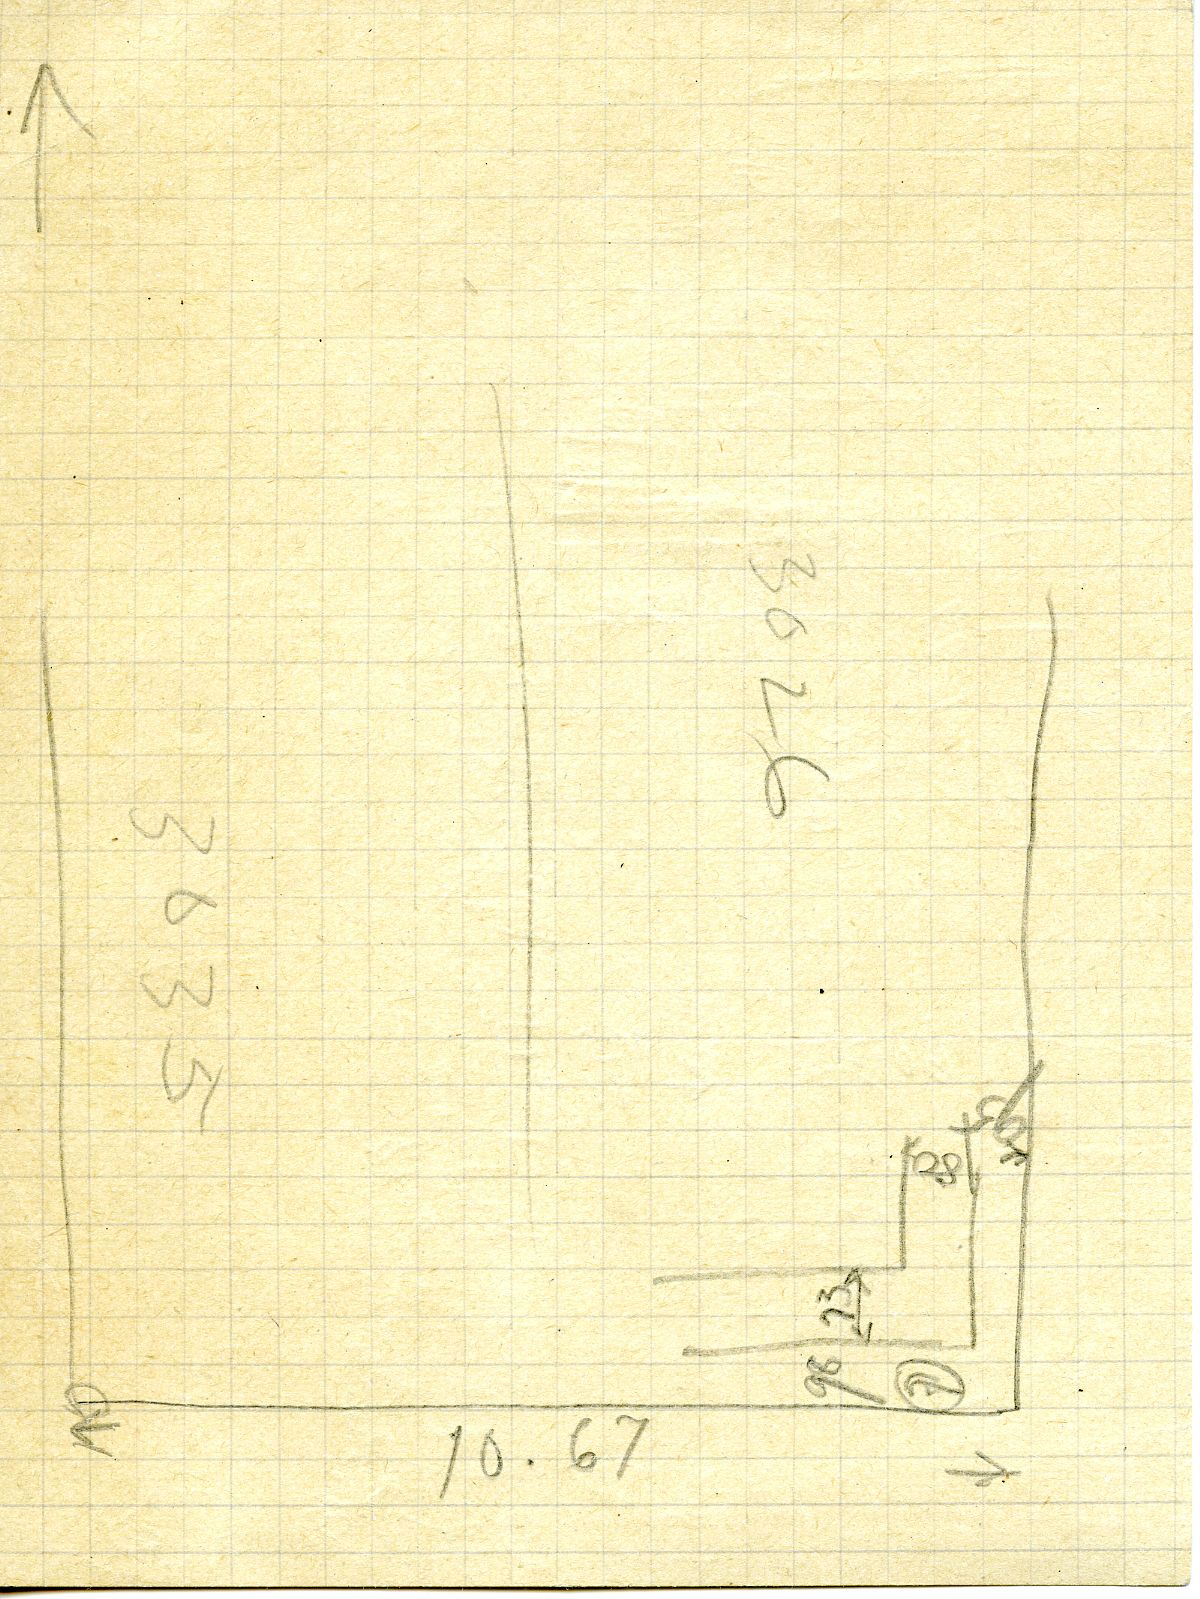 Maps and plans: Sketch plan of G 3026, G 3035